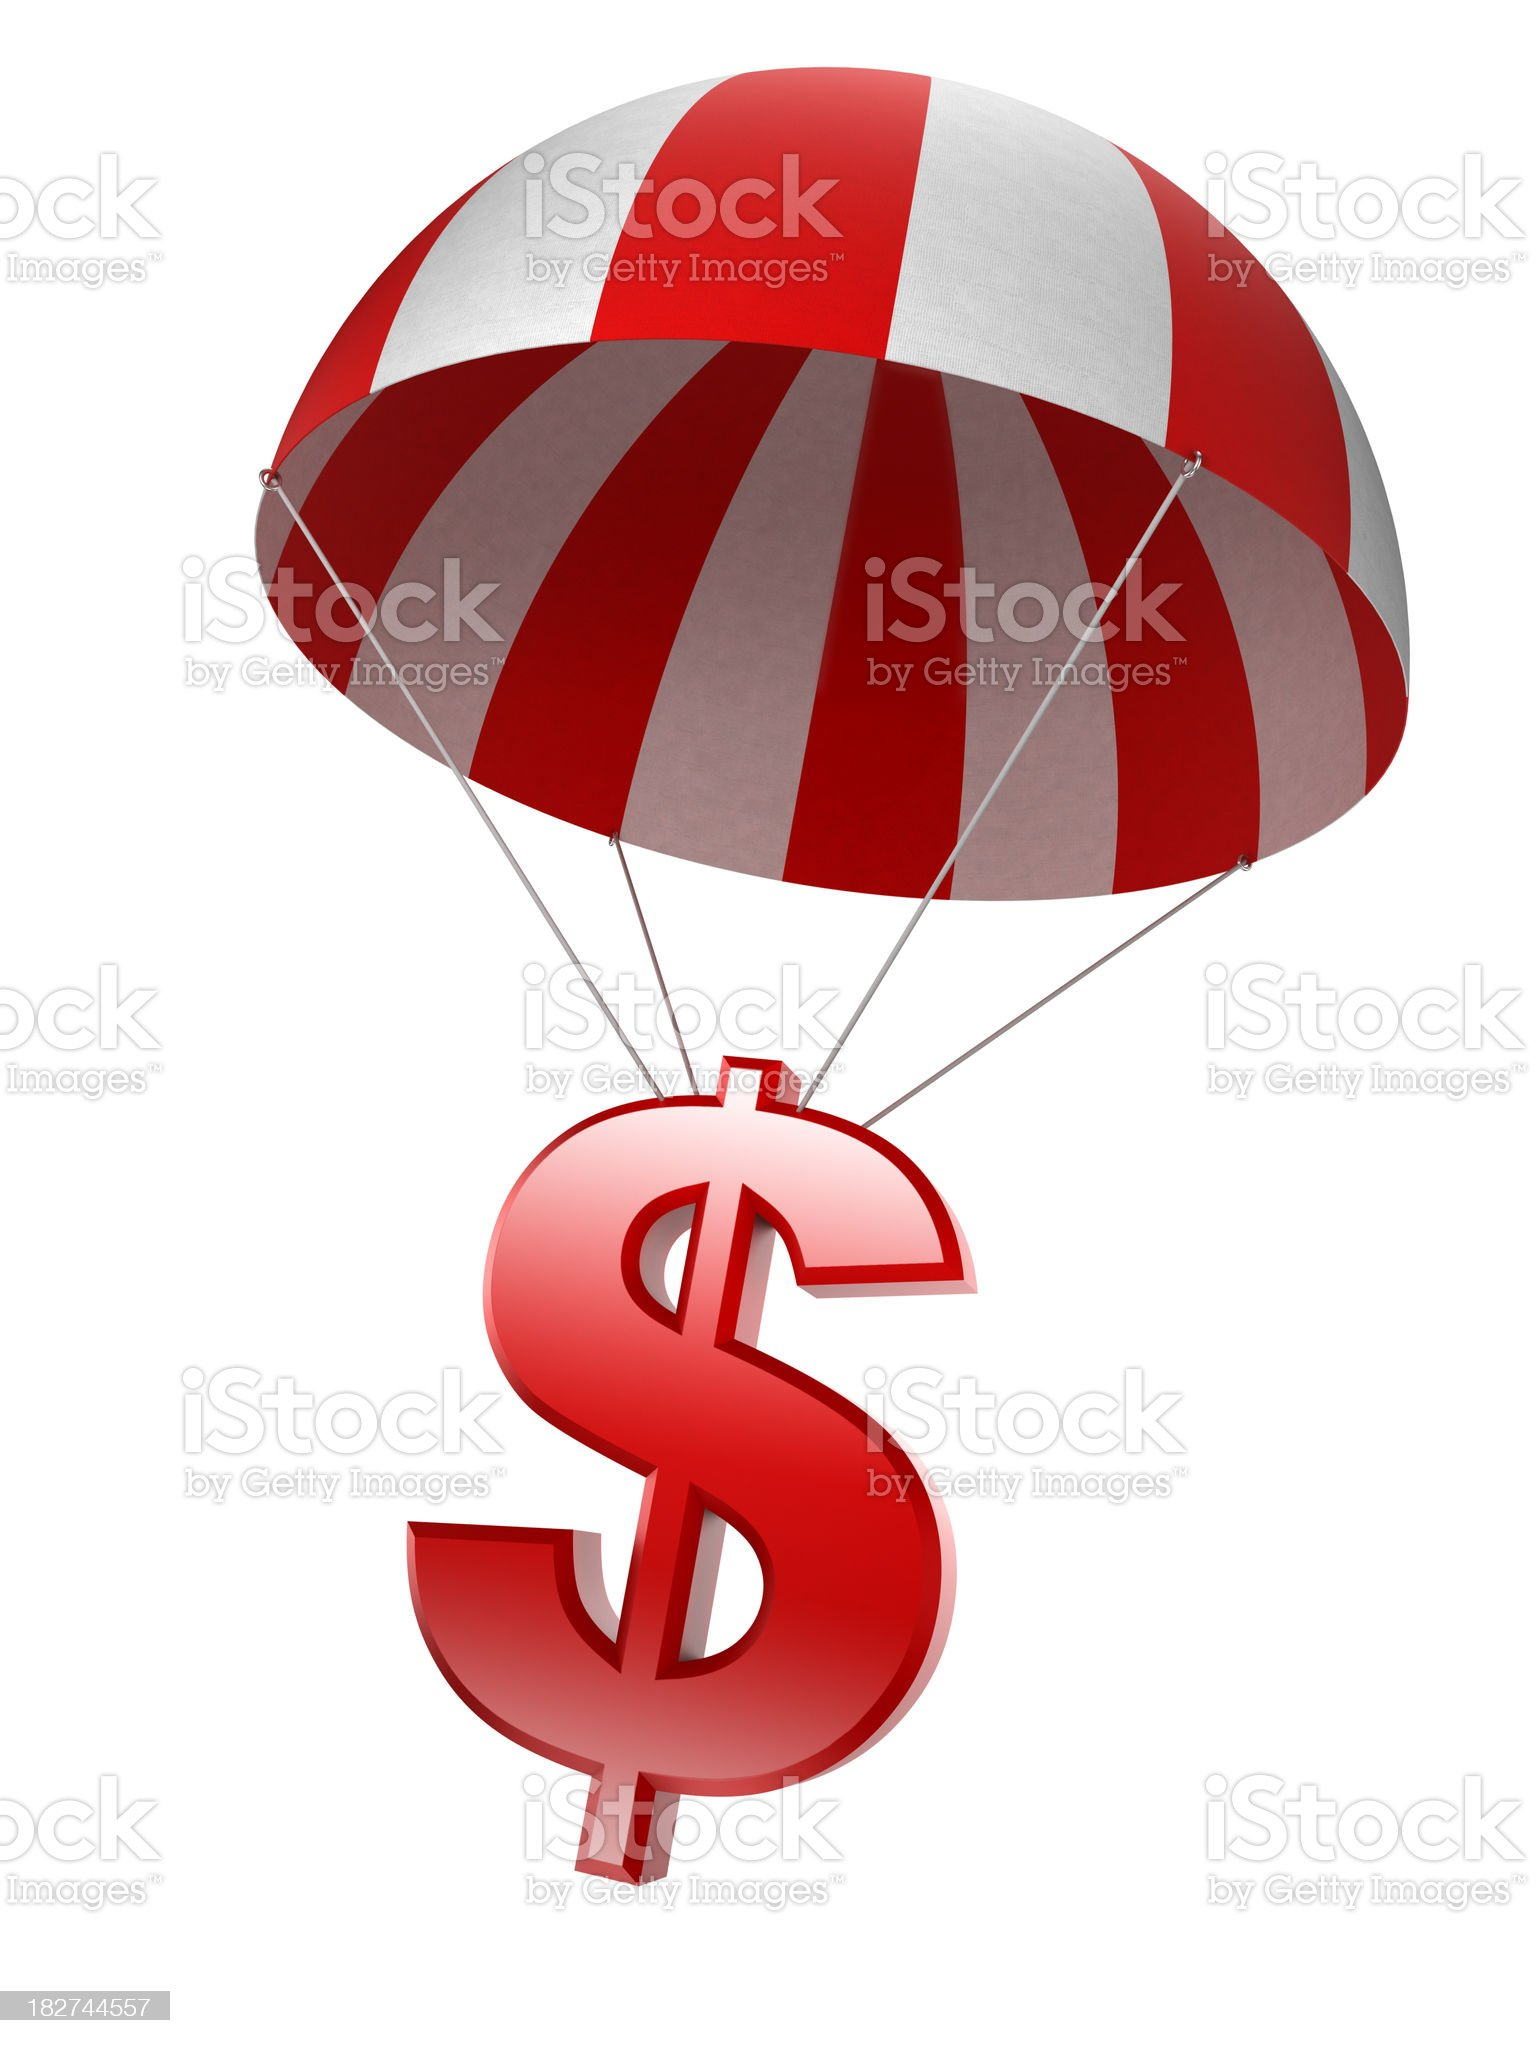 Dollar sign in parachute - isolated with clipping path royalty-free stock photo